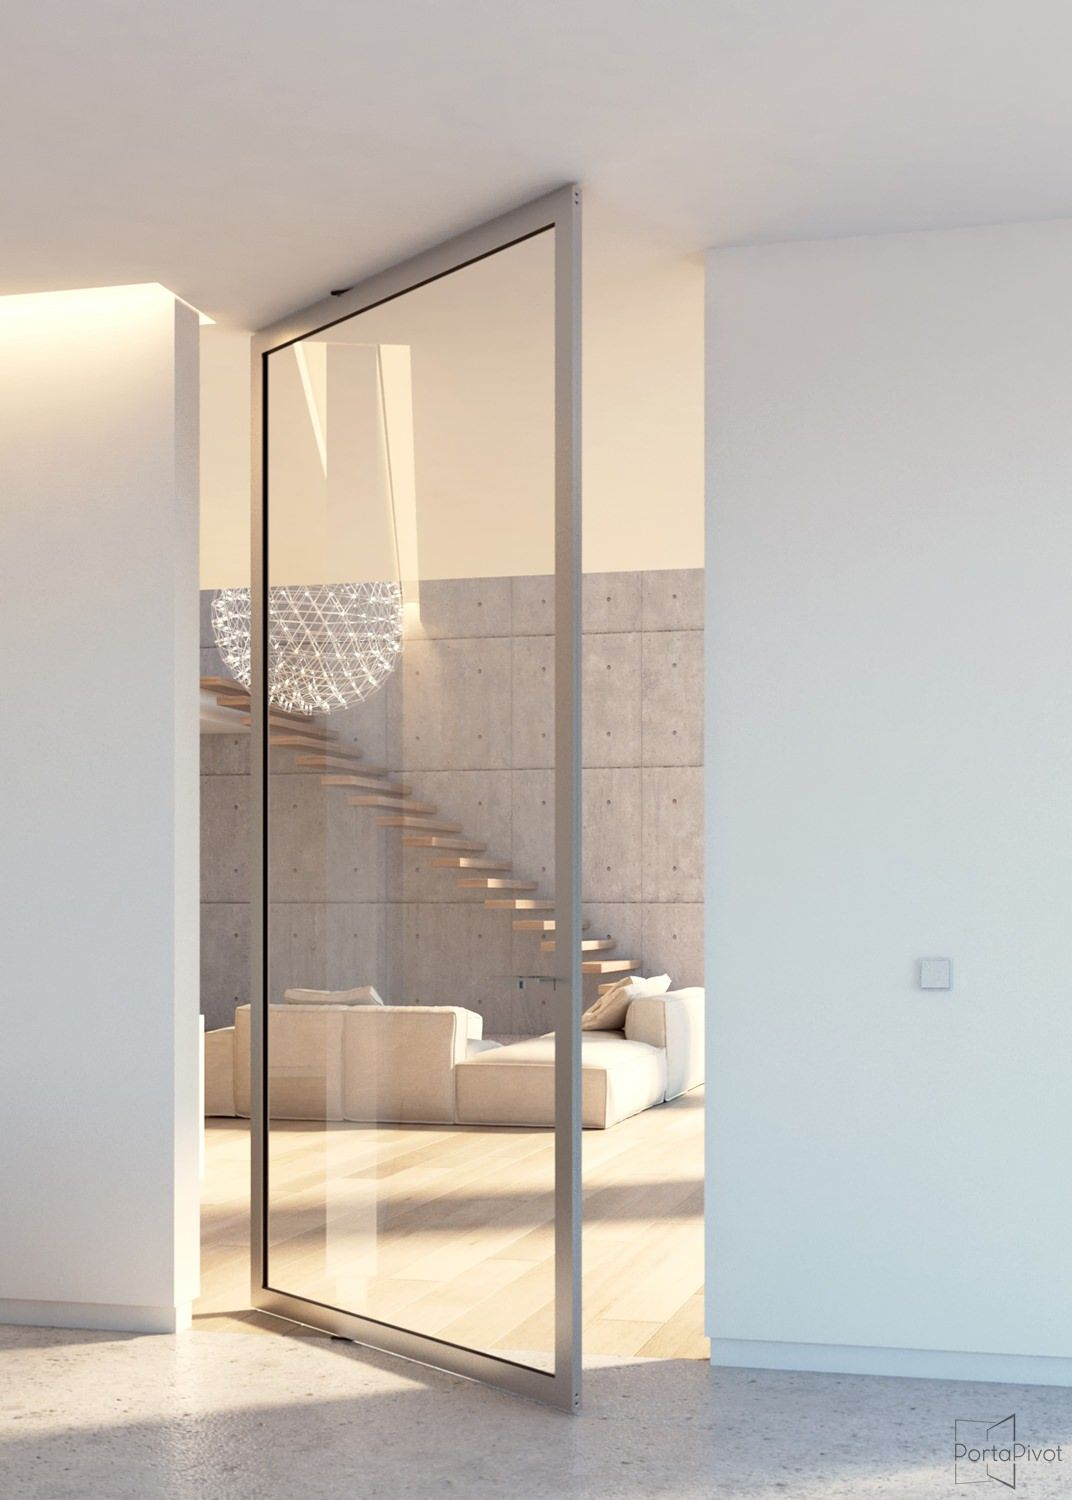 Le Meilleur Modern Glass Pivot Door With Offset Axis Pivoting Hinges Ce Mois Ci